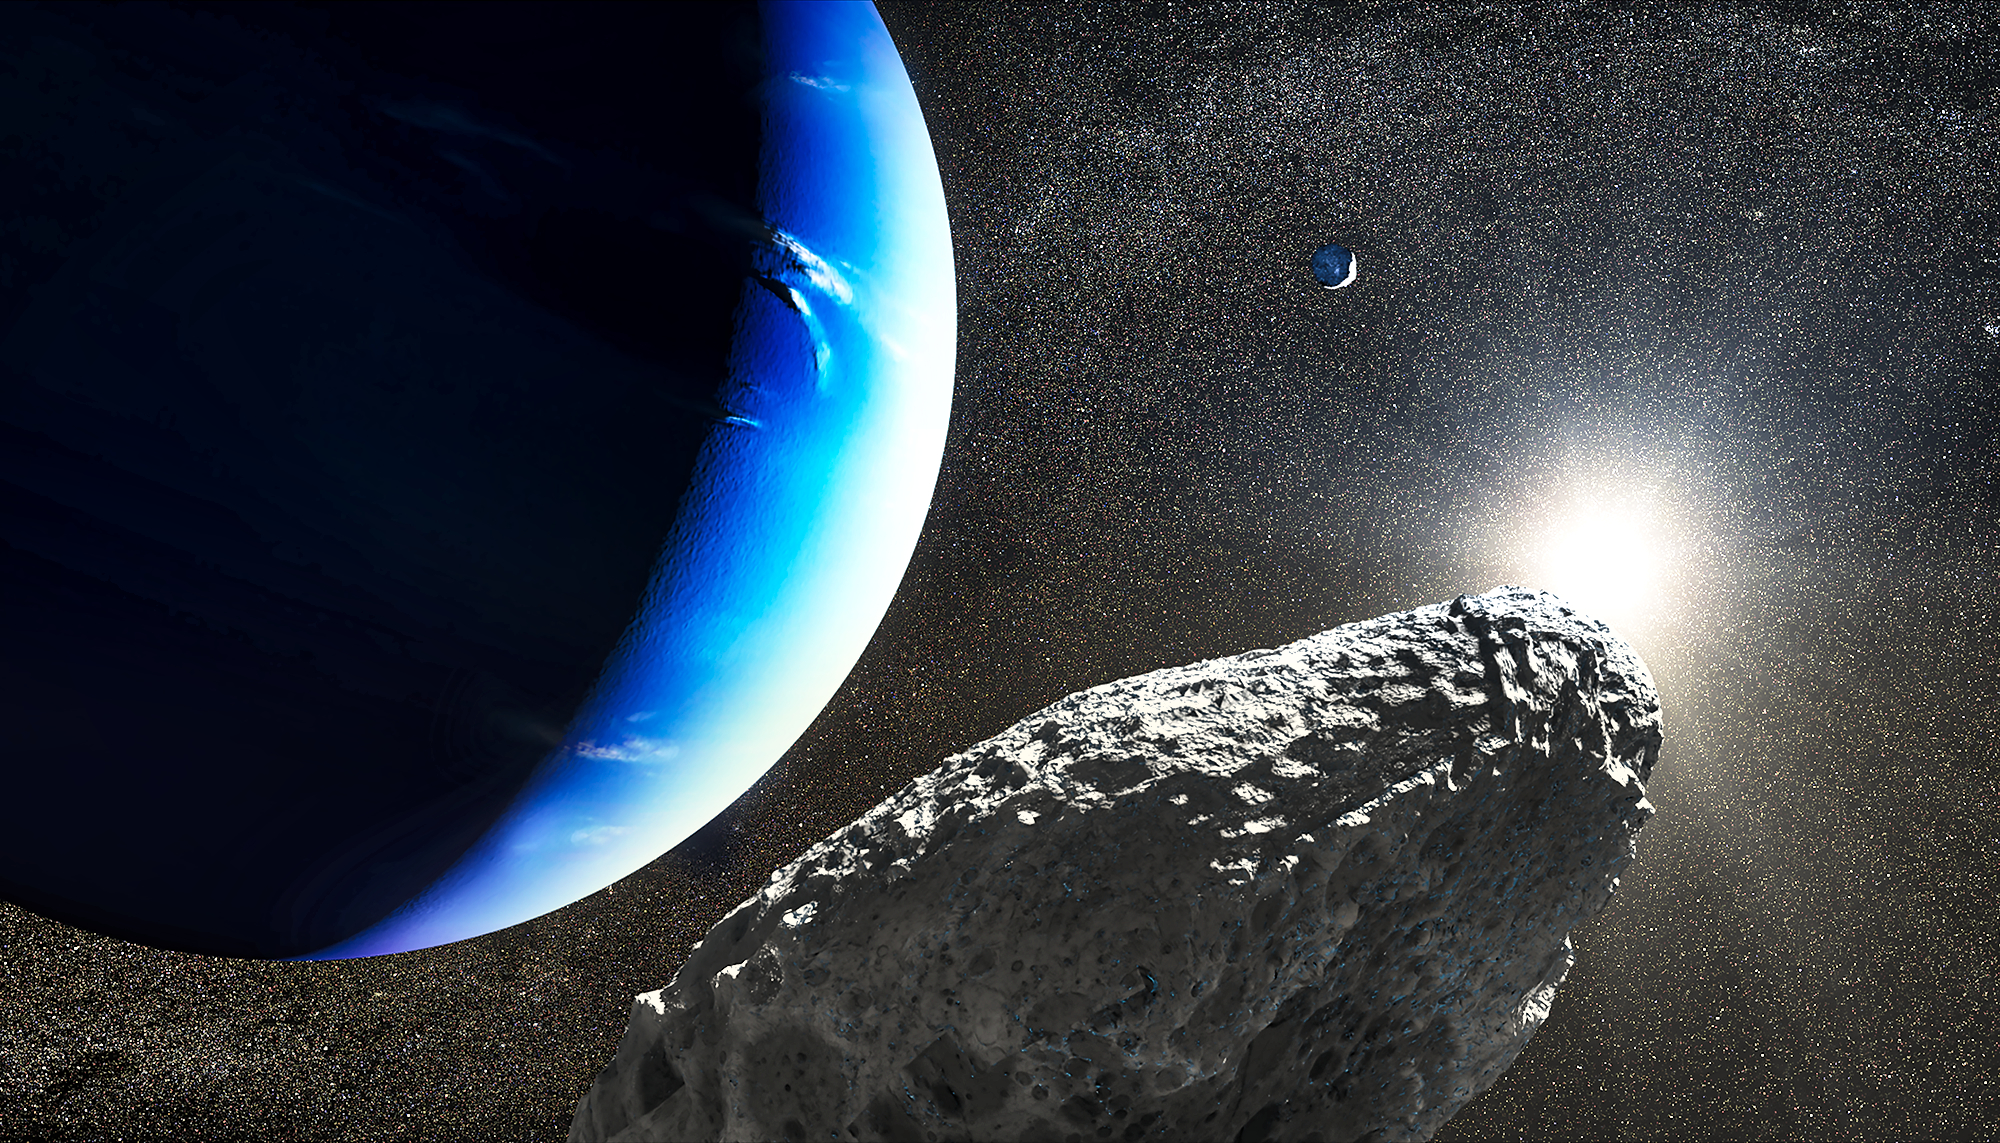 This is an artist's concept of the tiny moon Hippocamp that was discovered by the Hubble Space Telescope in 2013. Only 20 miles across, it may actually be a broken-off fragment from a much larger neighboring moon, Proteus, seen as a smaller crescent in the upper right. This is the first evidence for a moon being an offshoot from a comet collision with a much larger parent body. - Image Credits NASA, ESA and J. Olmsted (STScI)